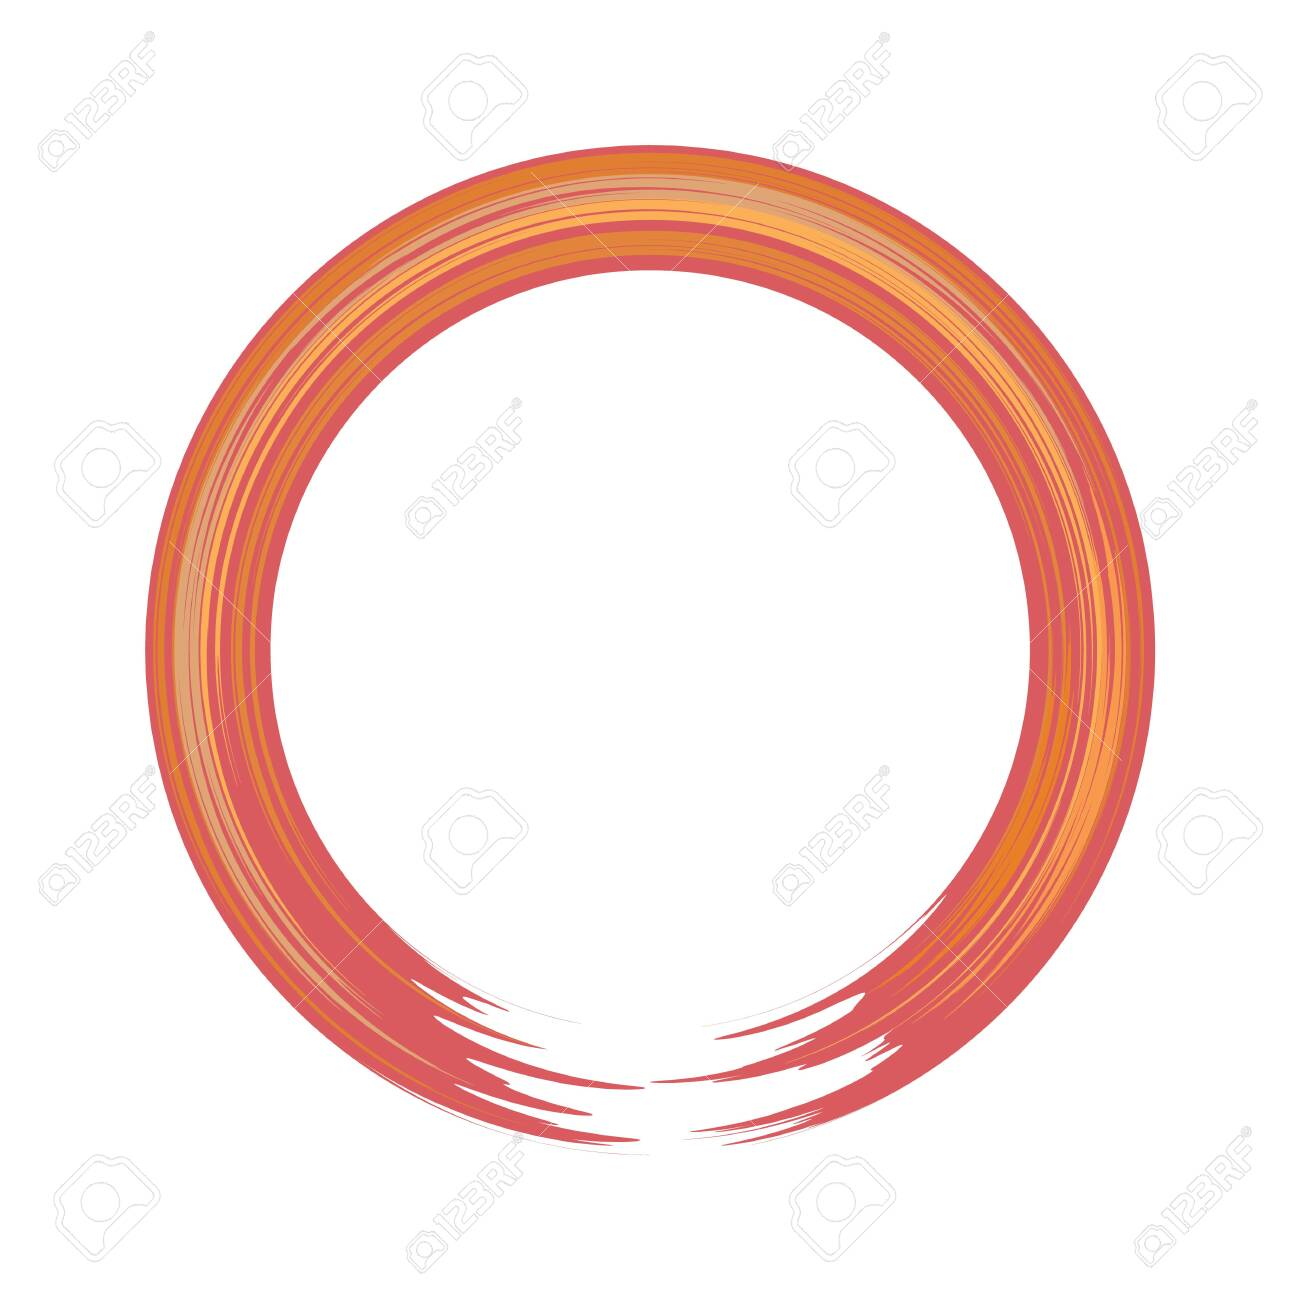 Hand-painted acryllic circle or round border. Flat and solid color vector illustration. - 146162987